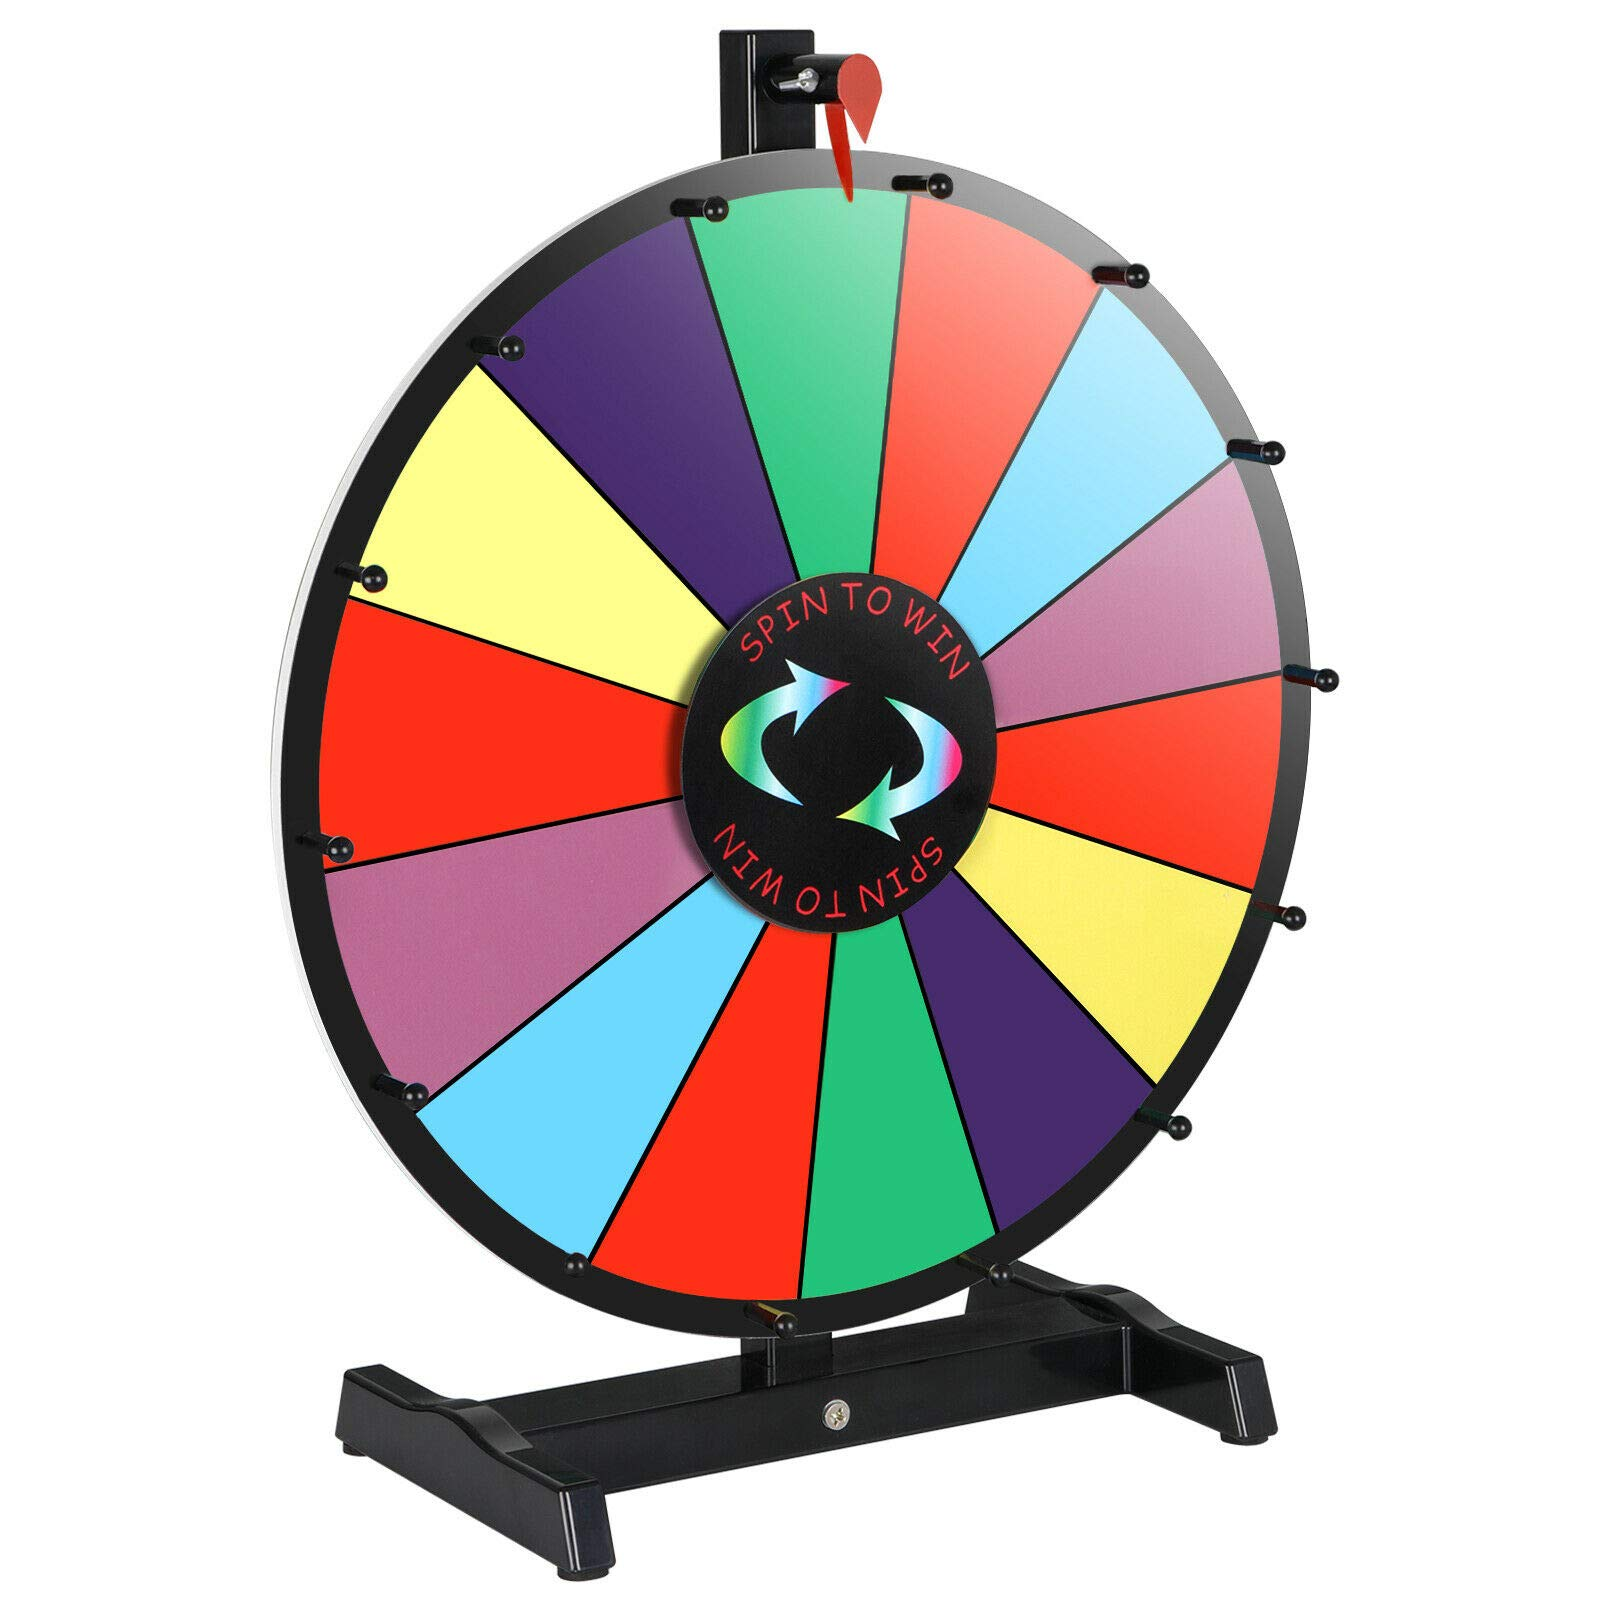 18'' Tabletop Prize Wheel Water Based Pen Eraser Editable Reusable Dry Erase Color Portable 14 Slots Perfect for Trade-Shows Promotion Activities Carnivals Annual Meetings Holiday Activities Parties